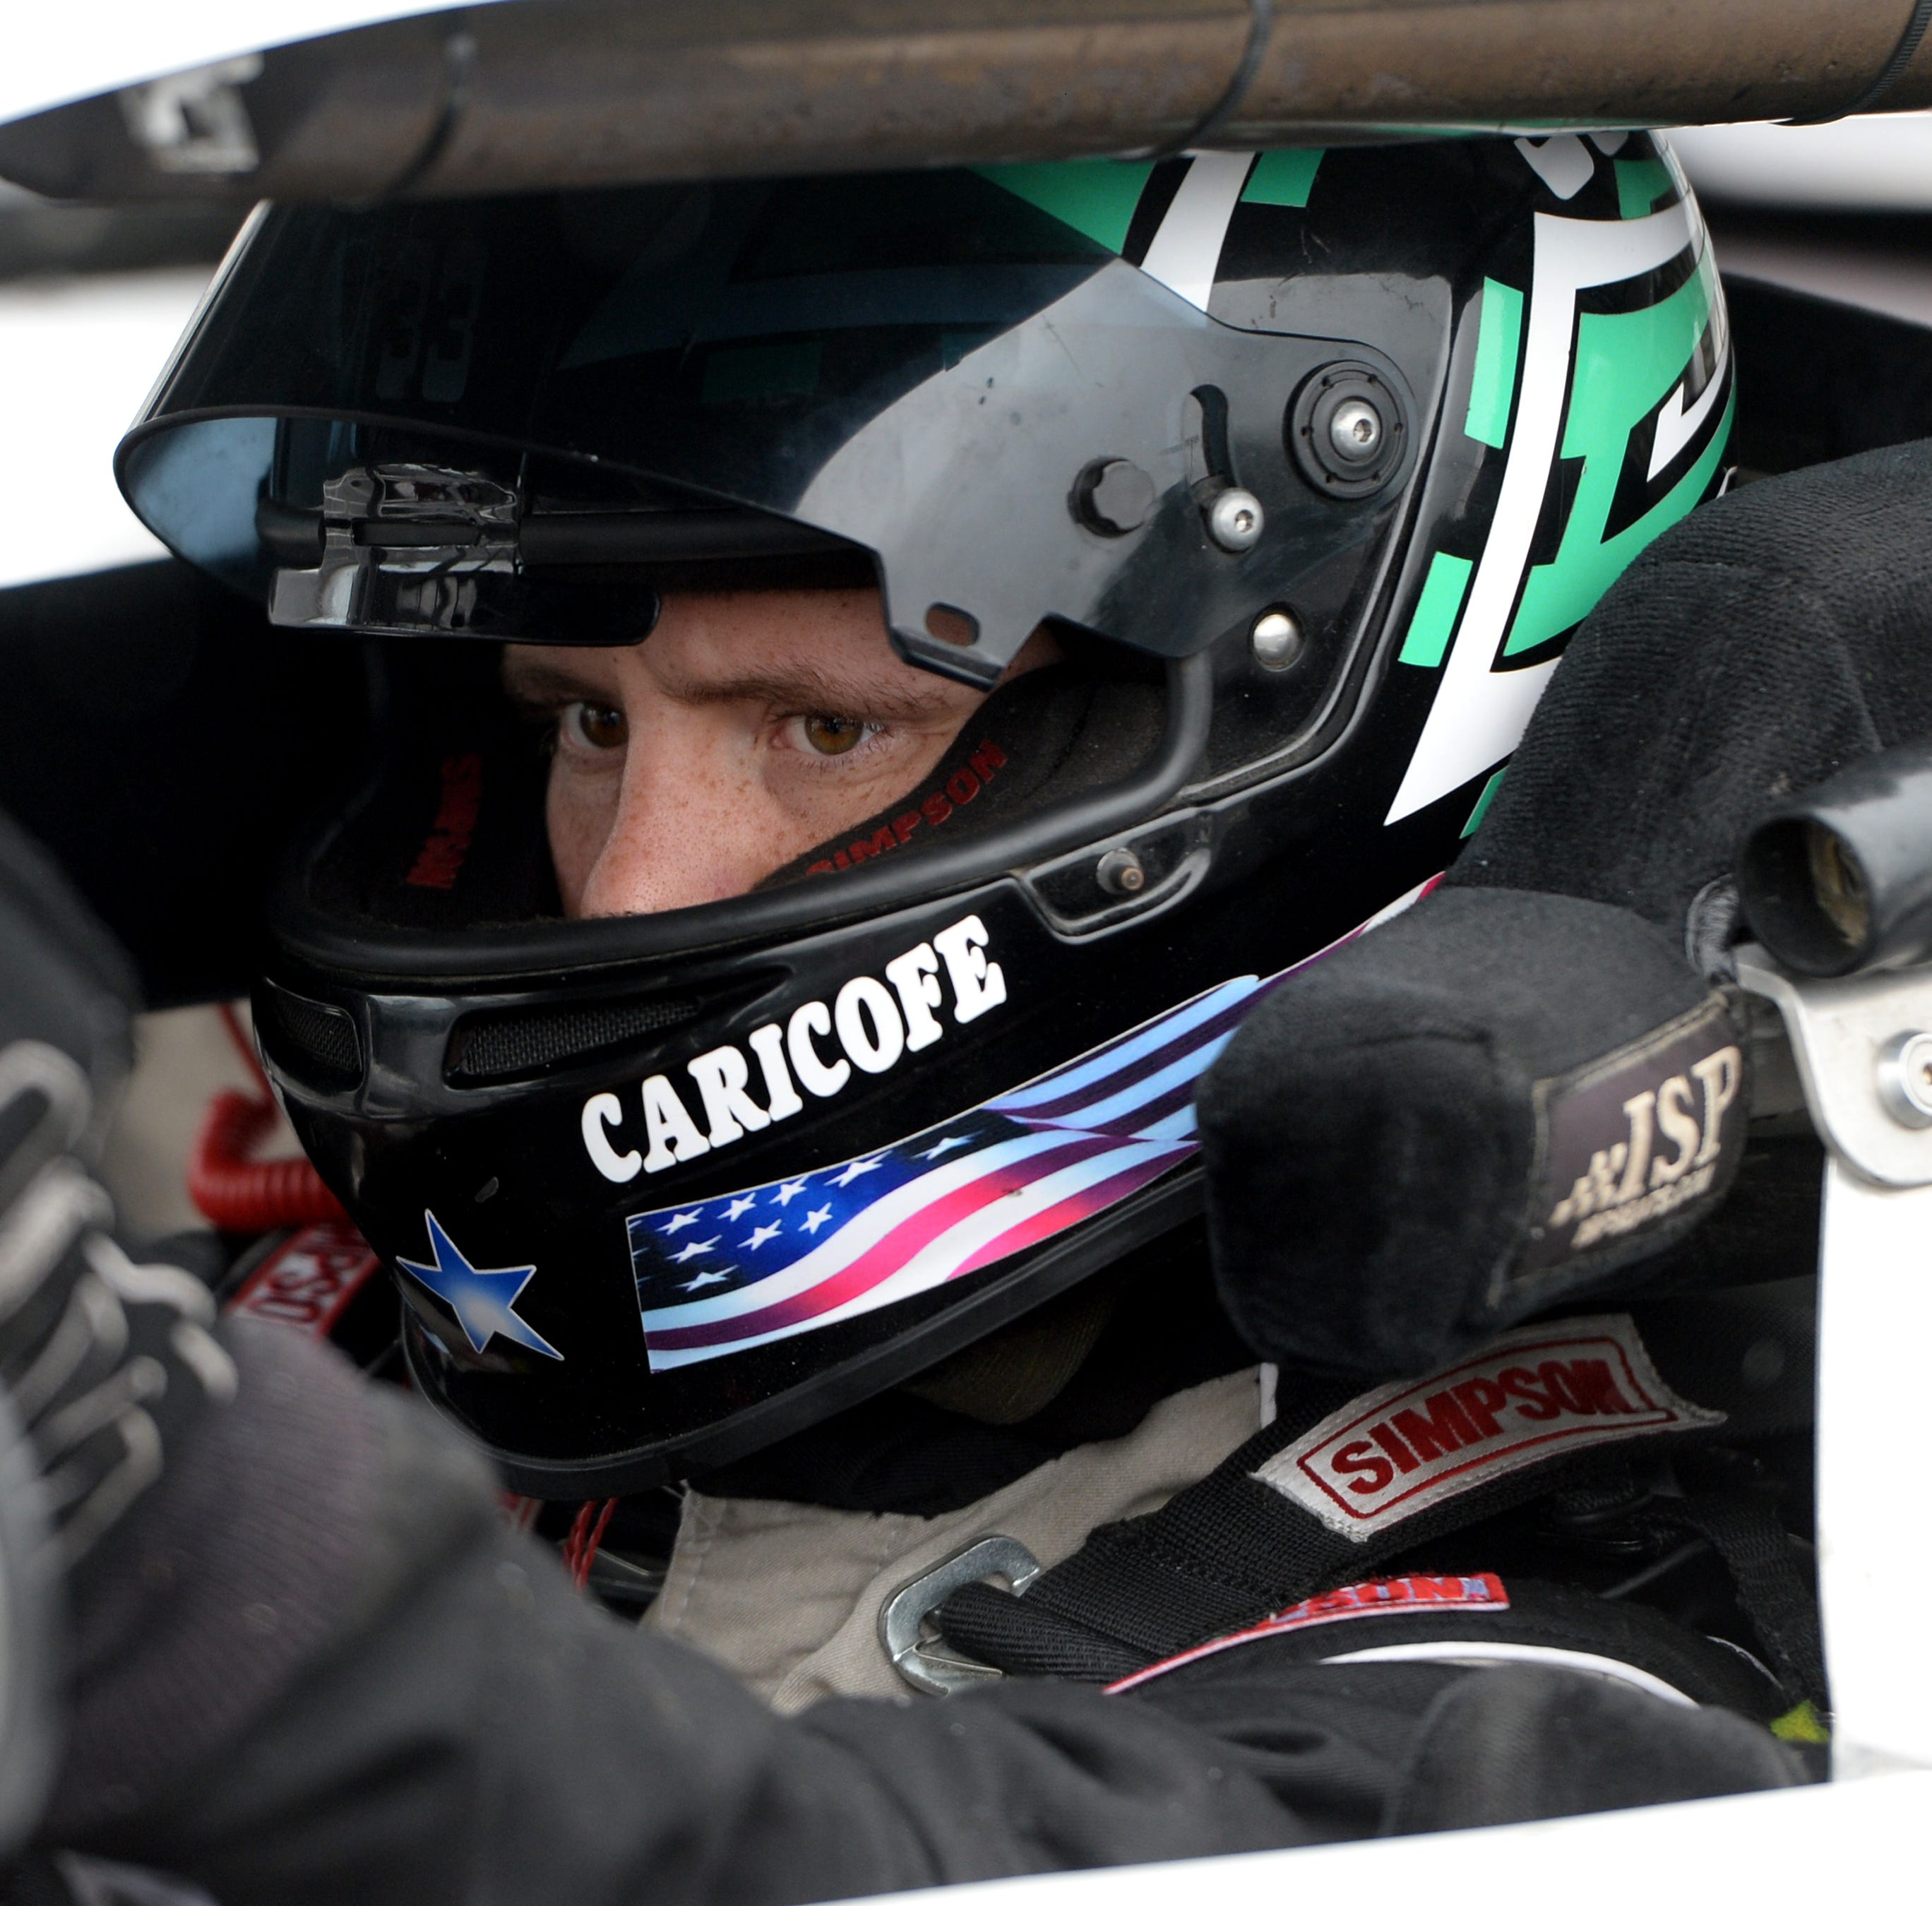 Caricofe running first season of late-model racing